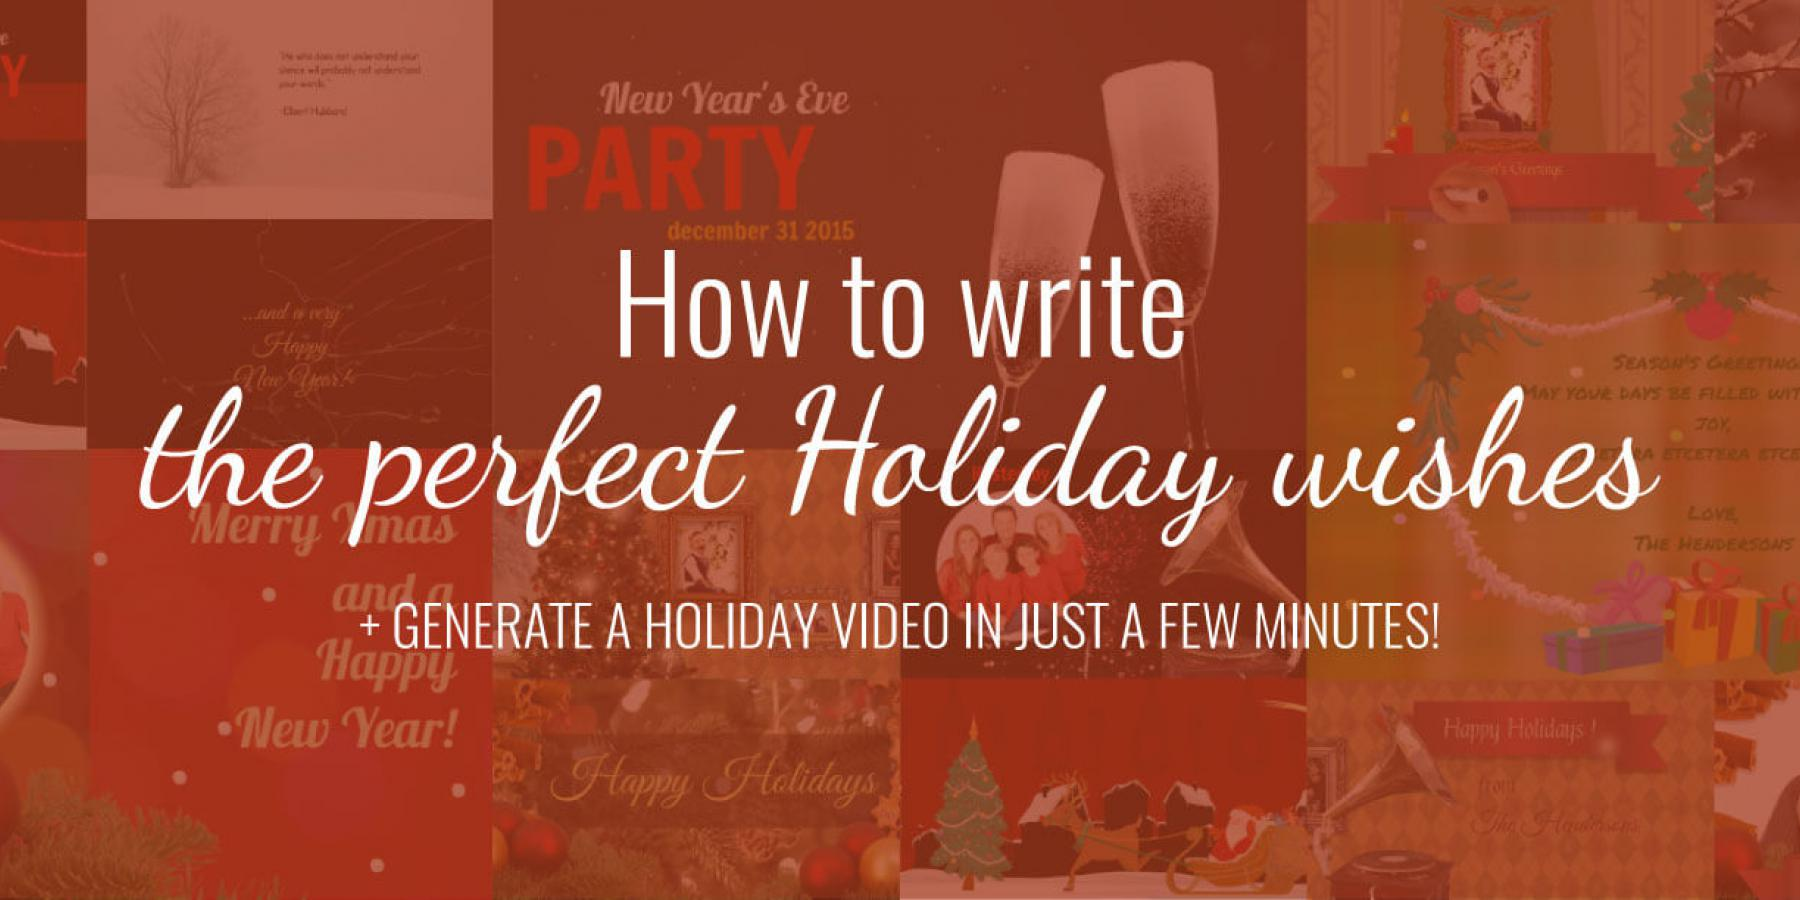 writing the perfect holiday wishes for friends and family